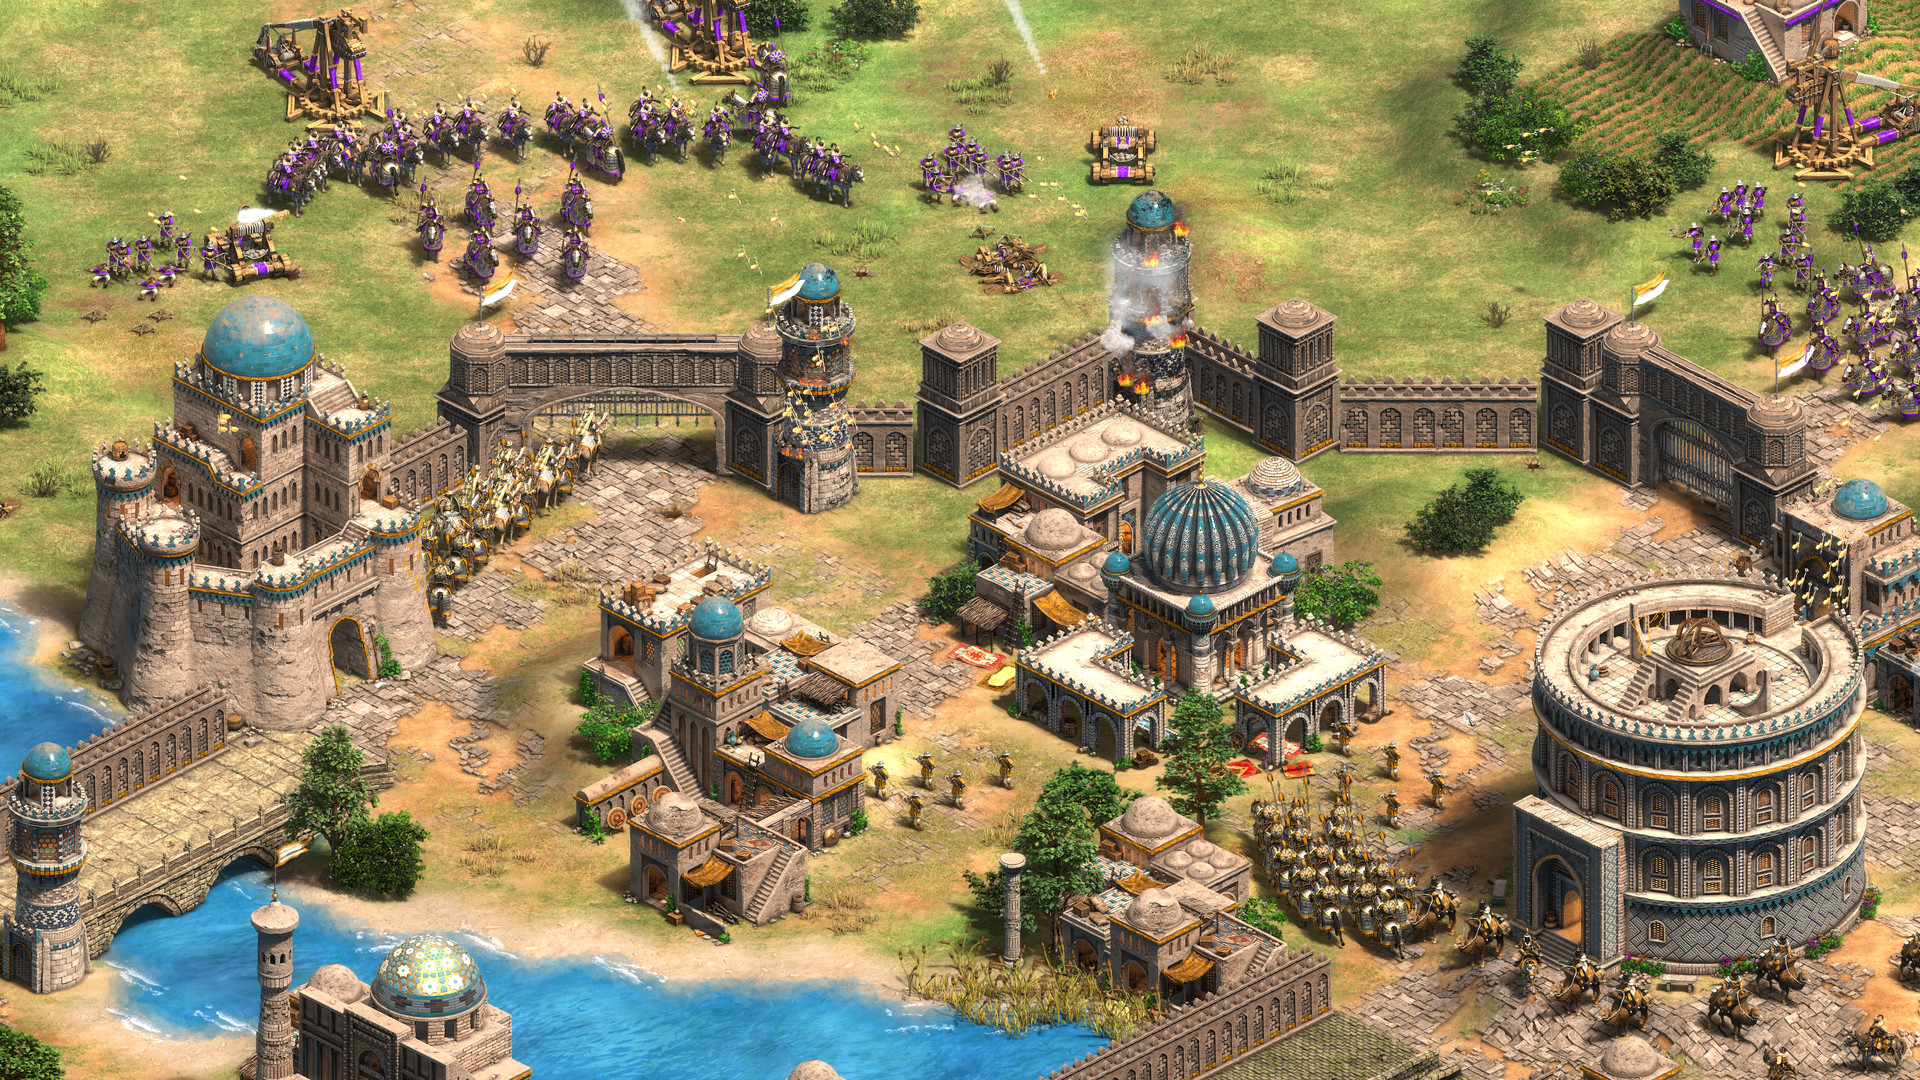 age of mythology tale of the dragon patch 2.4 download